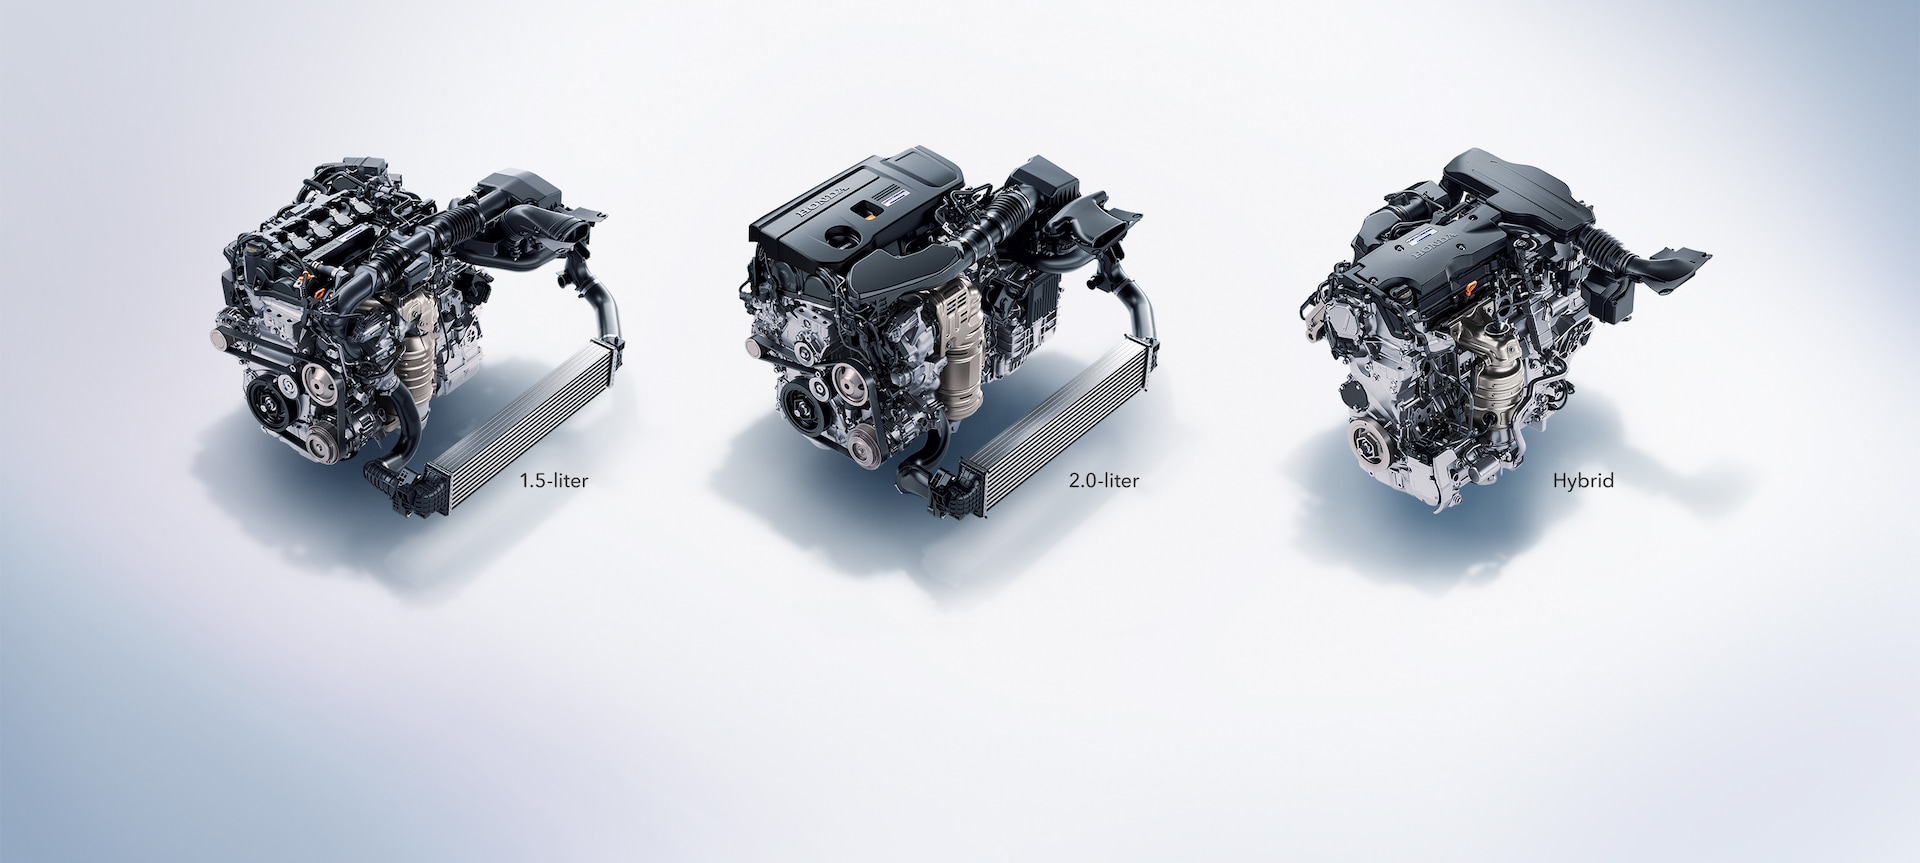 Advanced powertrain detail on 2020 Honda Accord depicting 1.5-liter and 2.0-liter turbocharged engines and next-generation two-motor hybrid system.